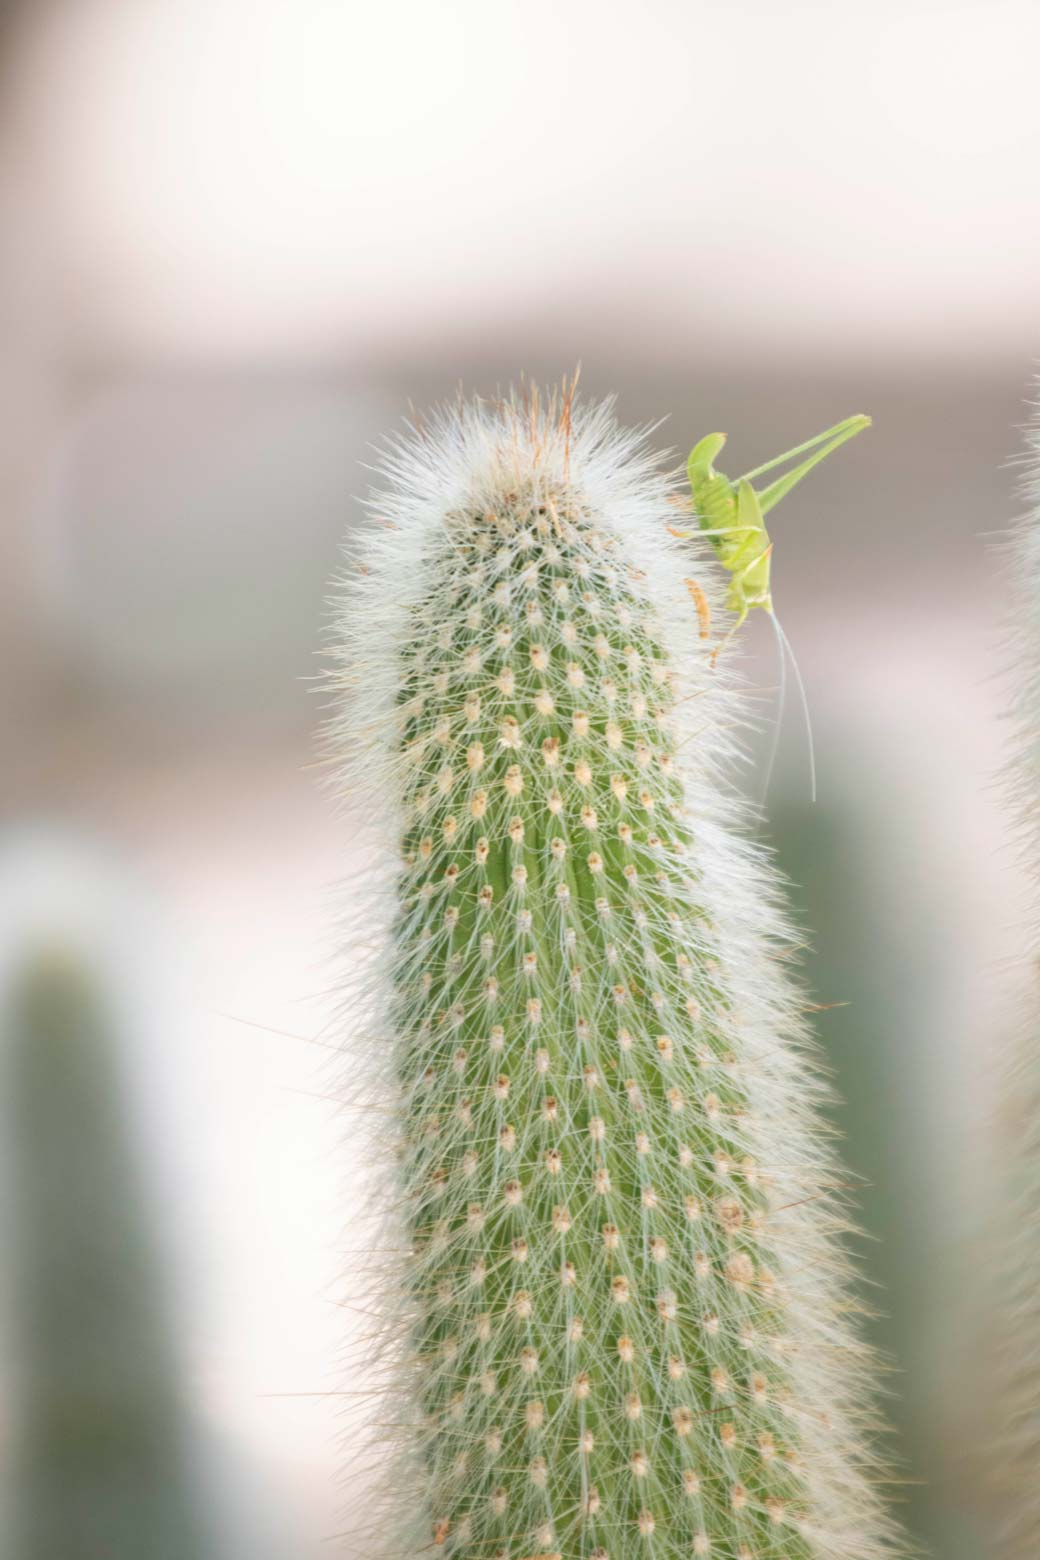 A grasshopper sits on the top of a Silver Torch cactus.